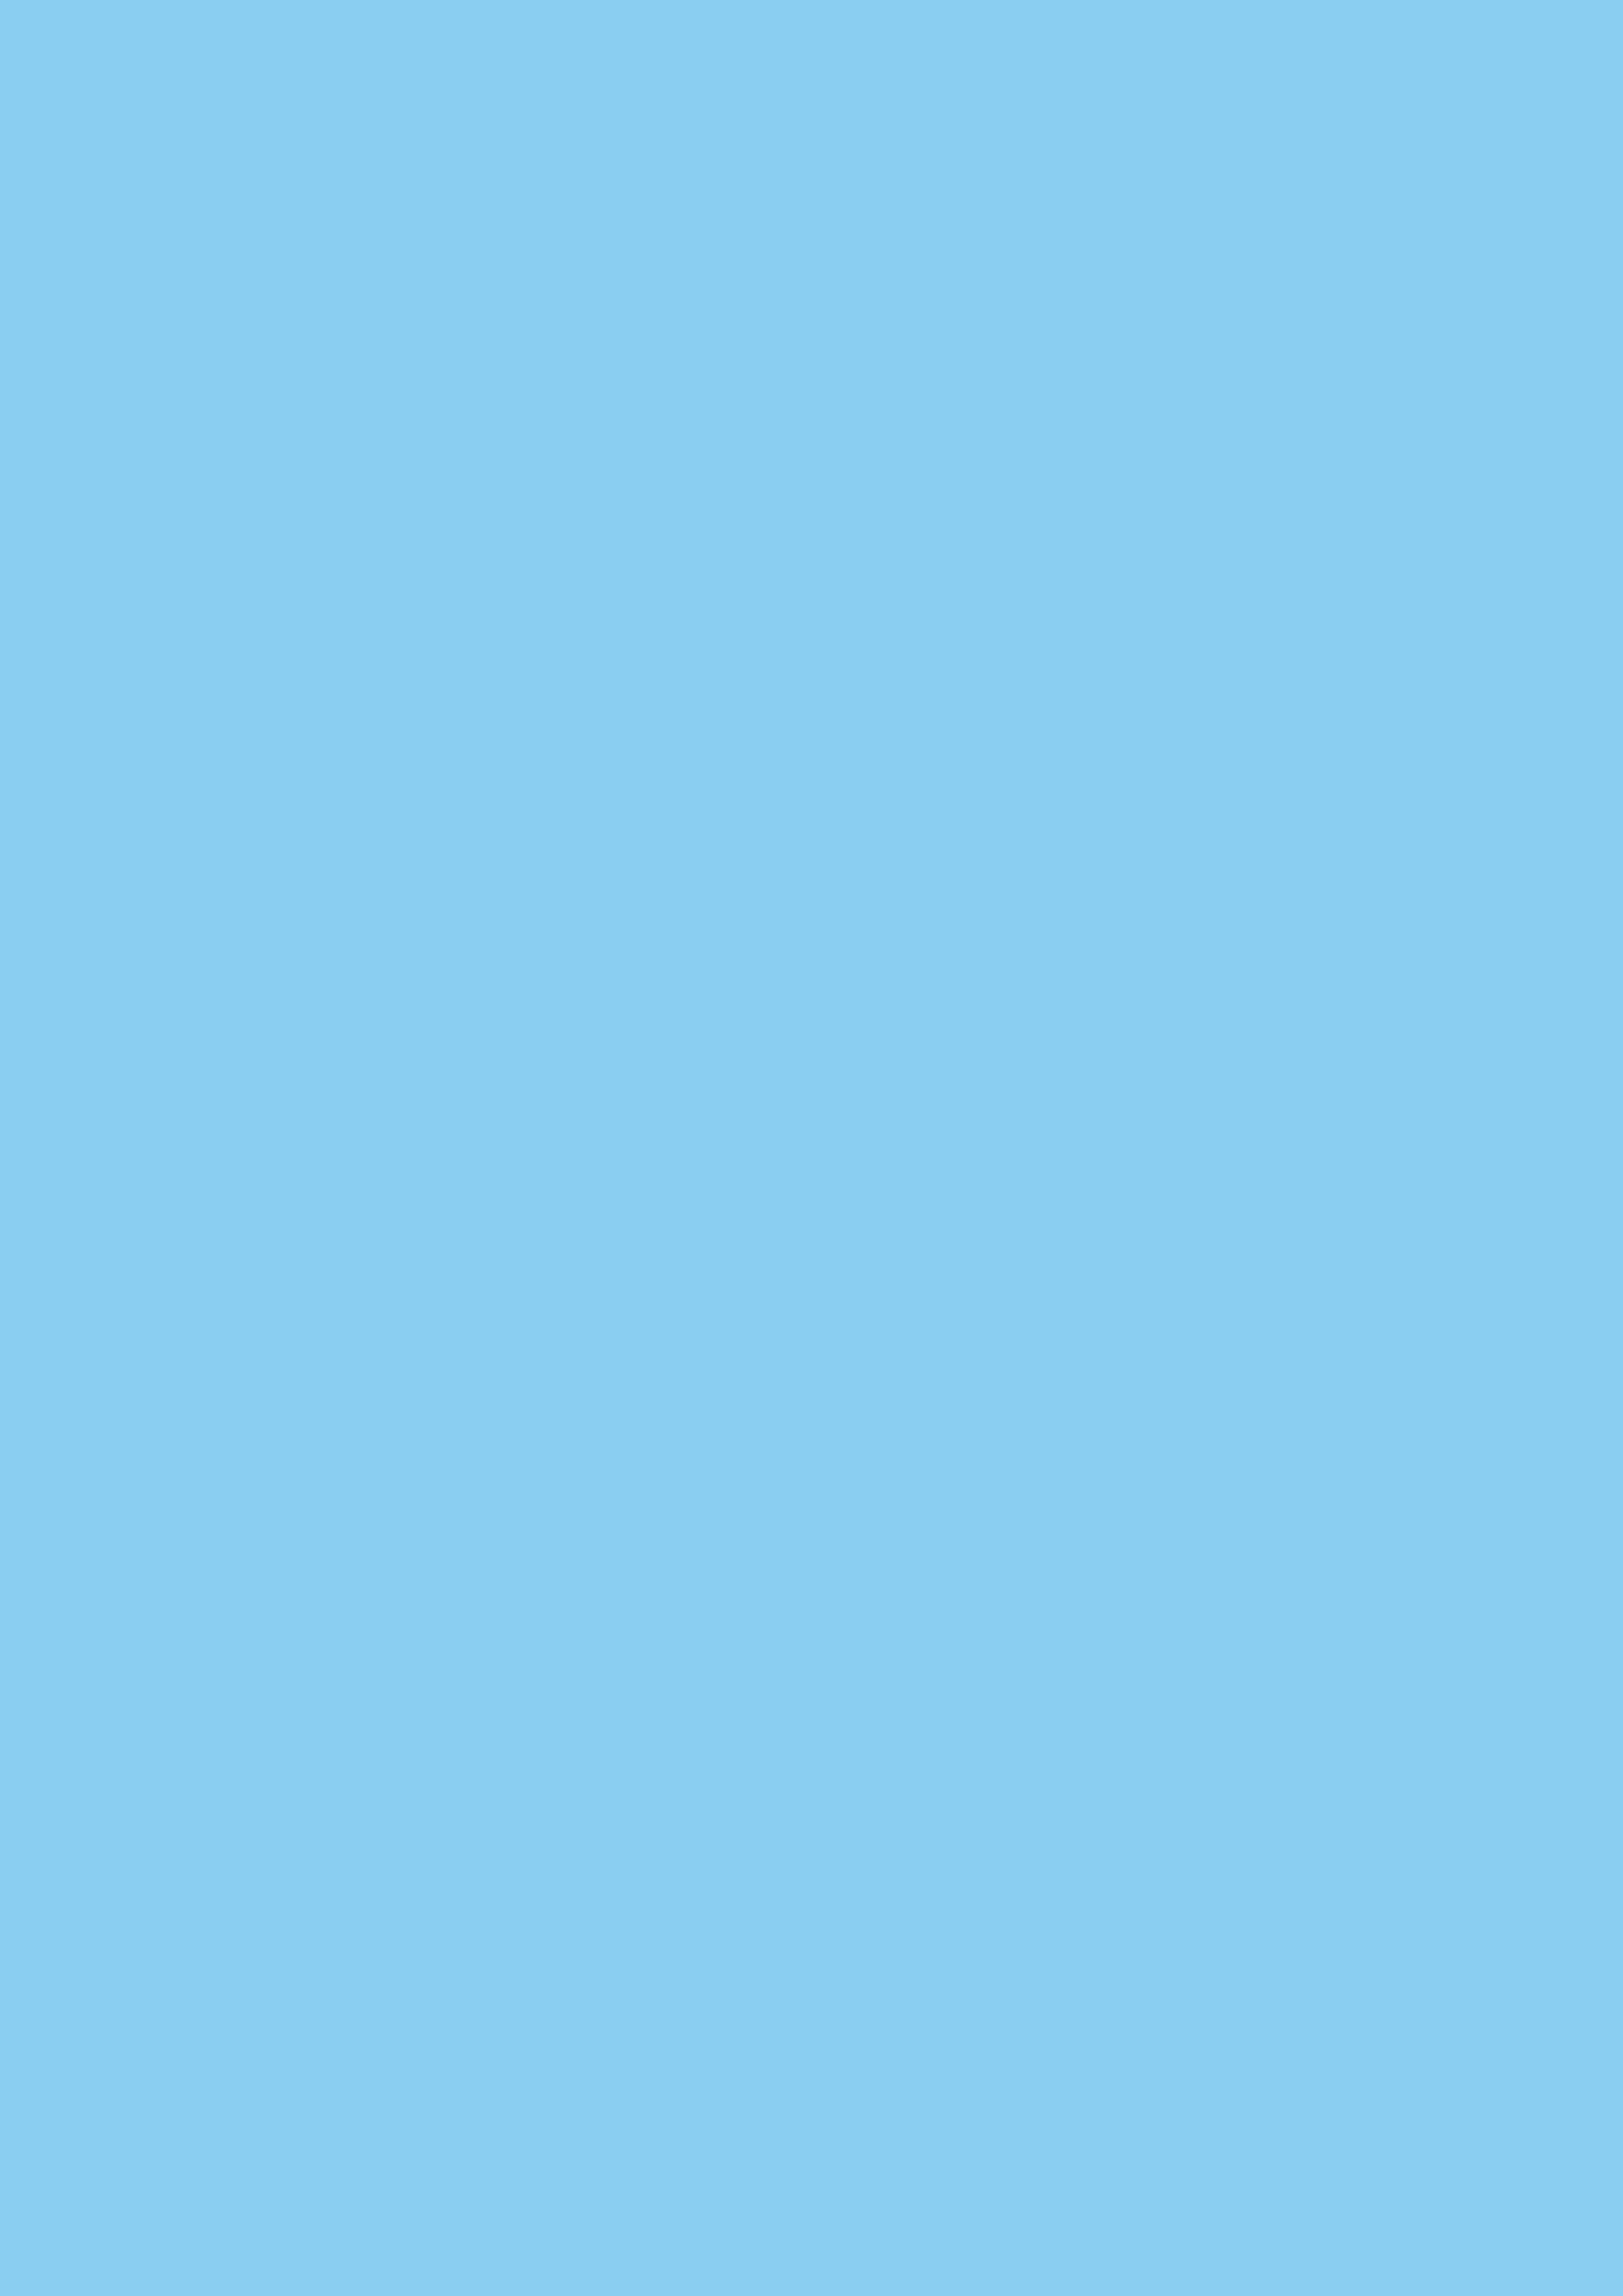 2480x3508 Baby Blue Solid Color Background